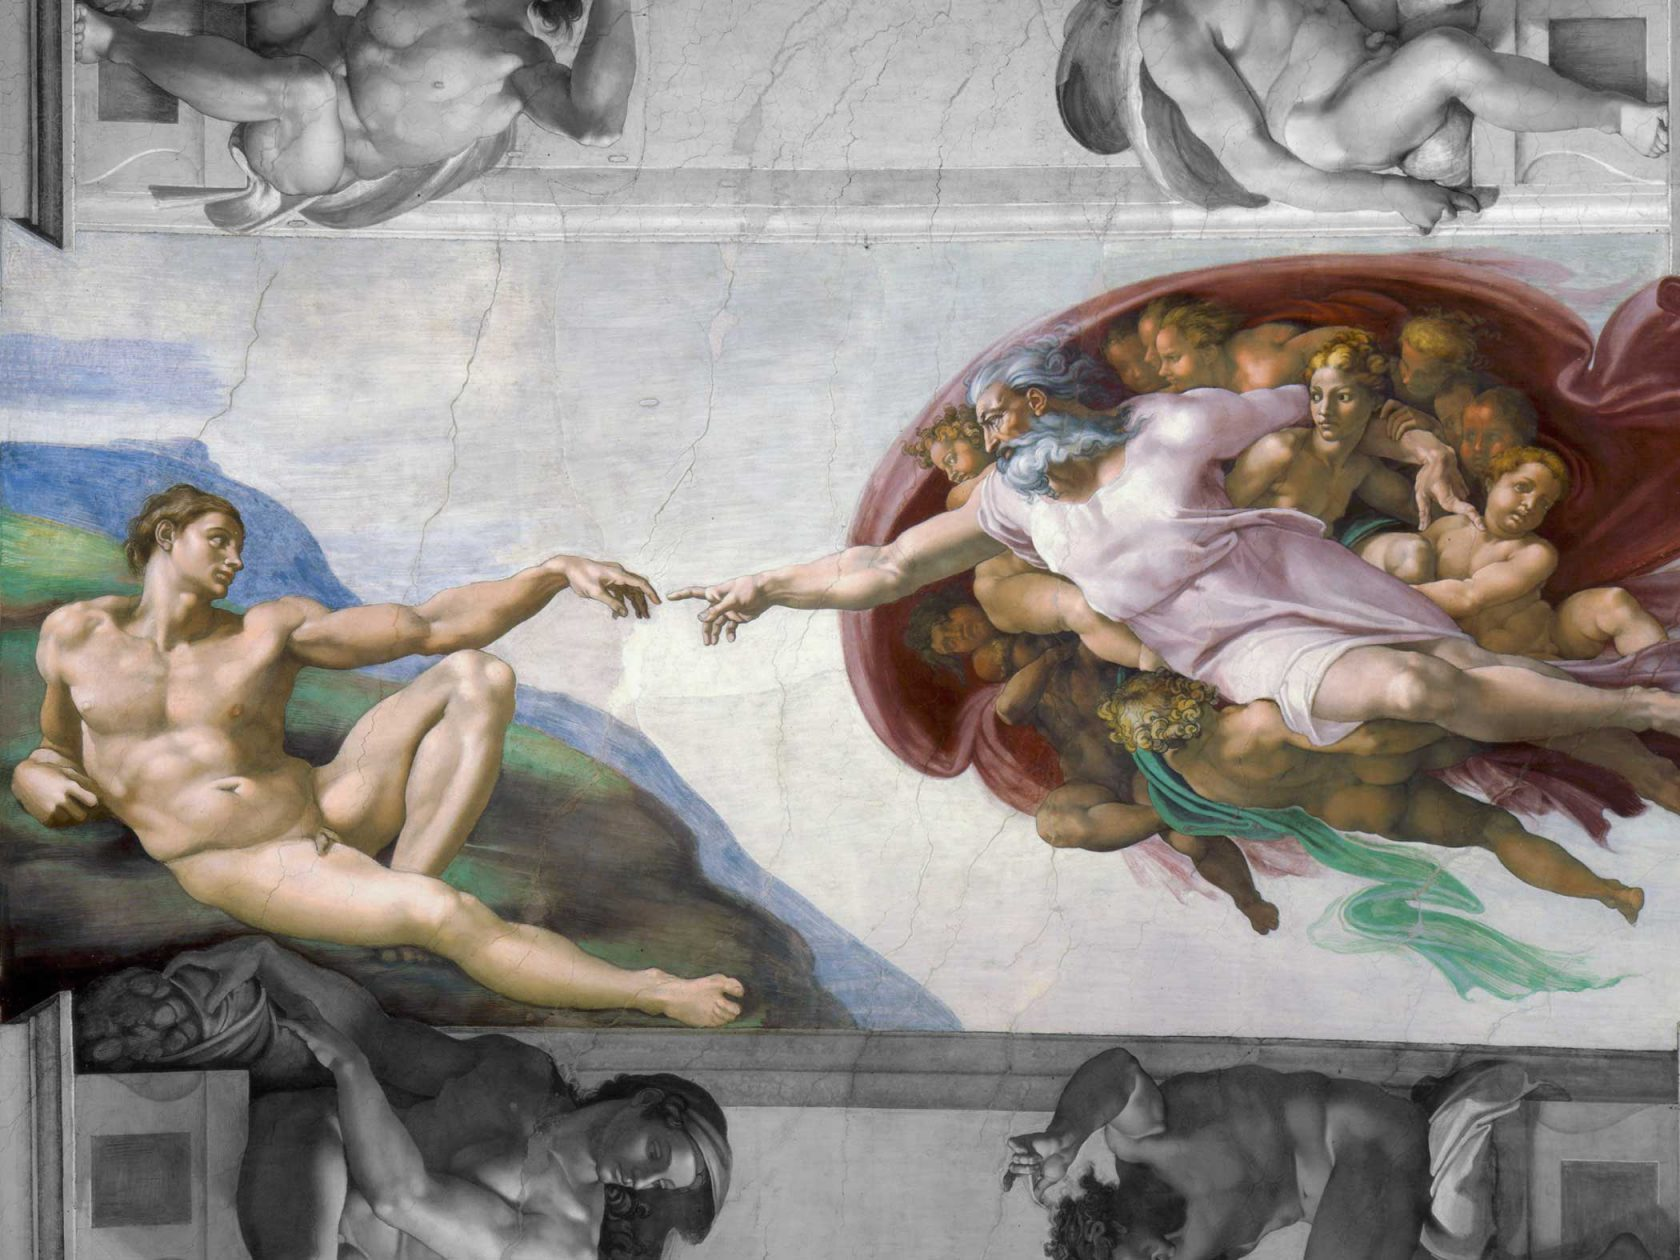 The Creation of Adam, Michelangelo, ca. 1511, [Public domain] via Wikimedia Commons